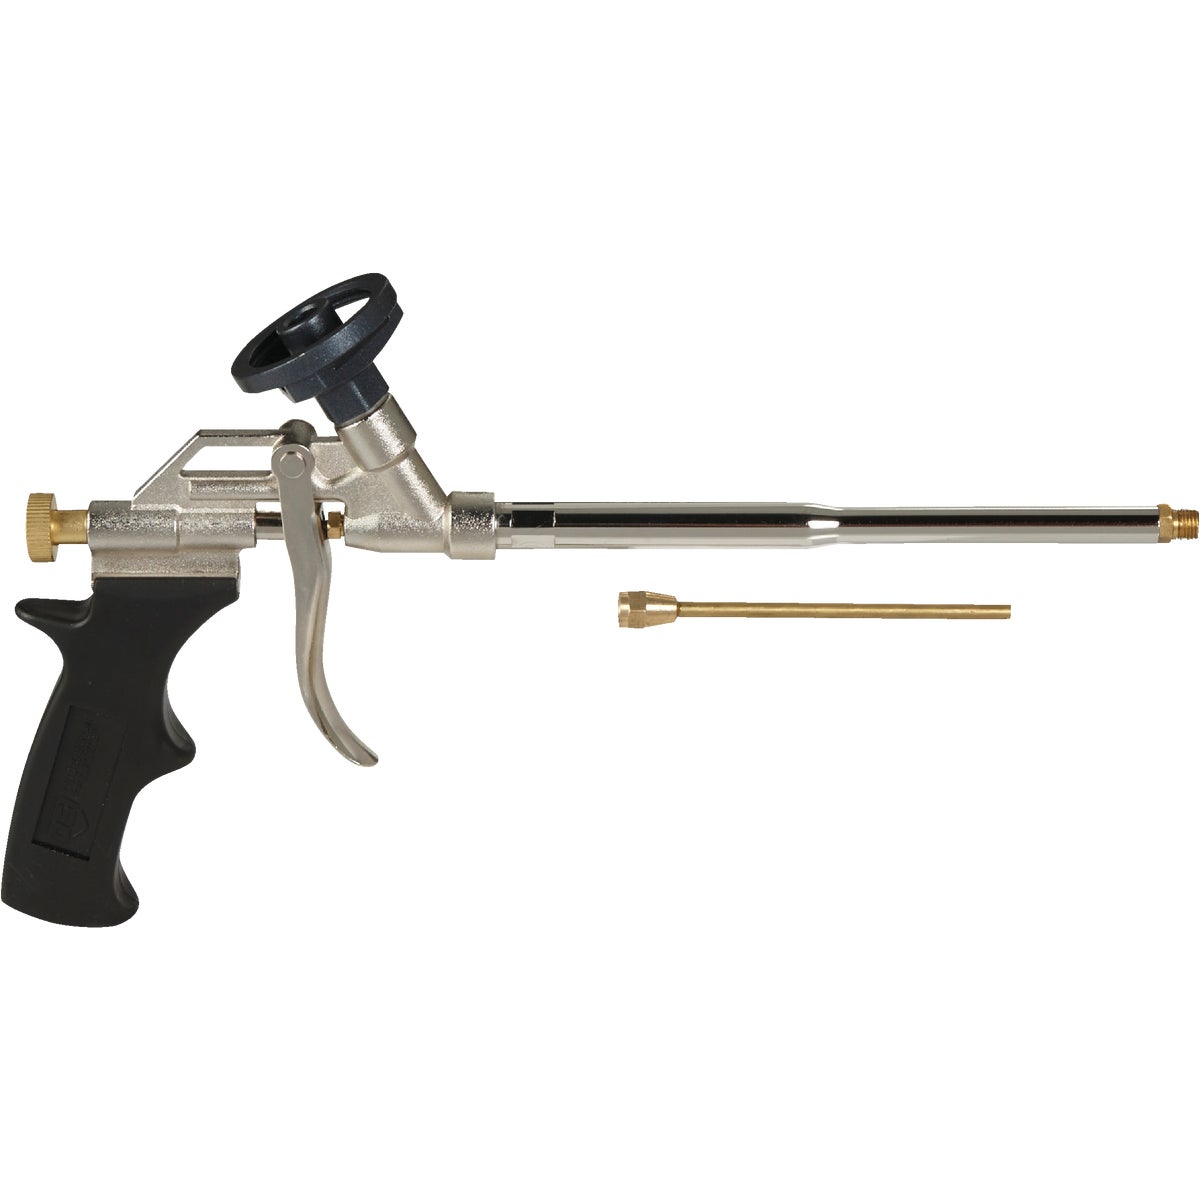 OSI FOAM APPLICATOR GUN